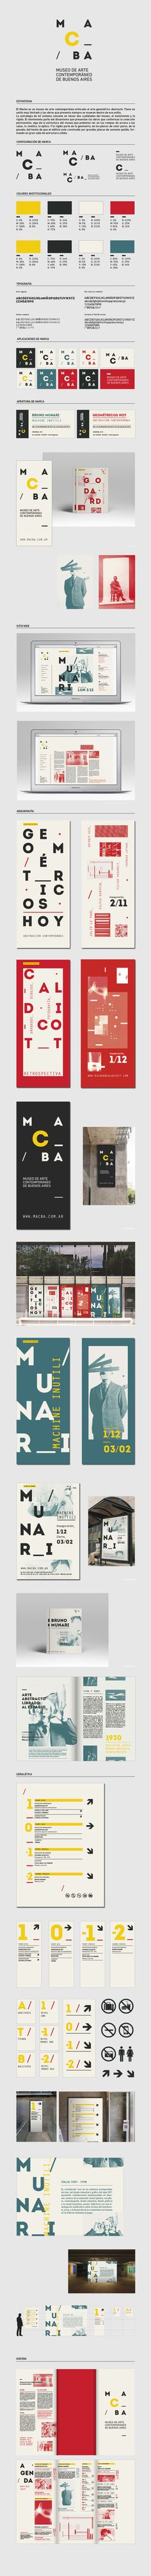 Sistema MACBA by Florencia Beil, via Behance // extensive guidelines and application Corporate Design, Brand Identity Design, Graphic Design Typography, Branding Design, Logo Design, Branding Ideas, Corporate Branding, Design Guidelines, Brand Guidelines